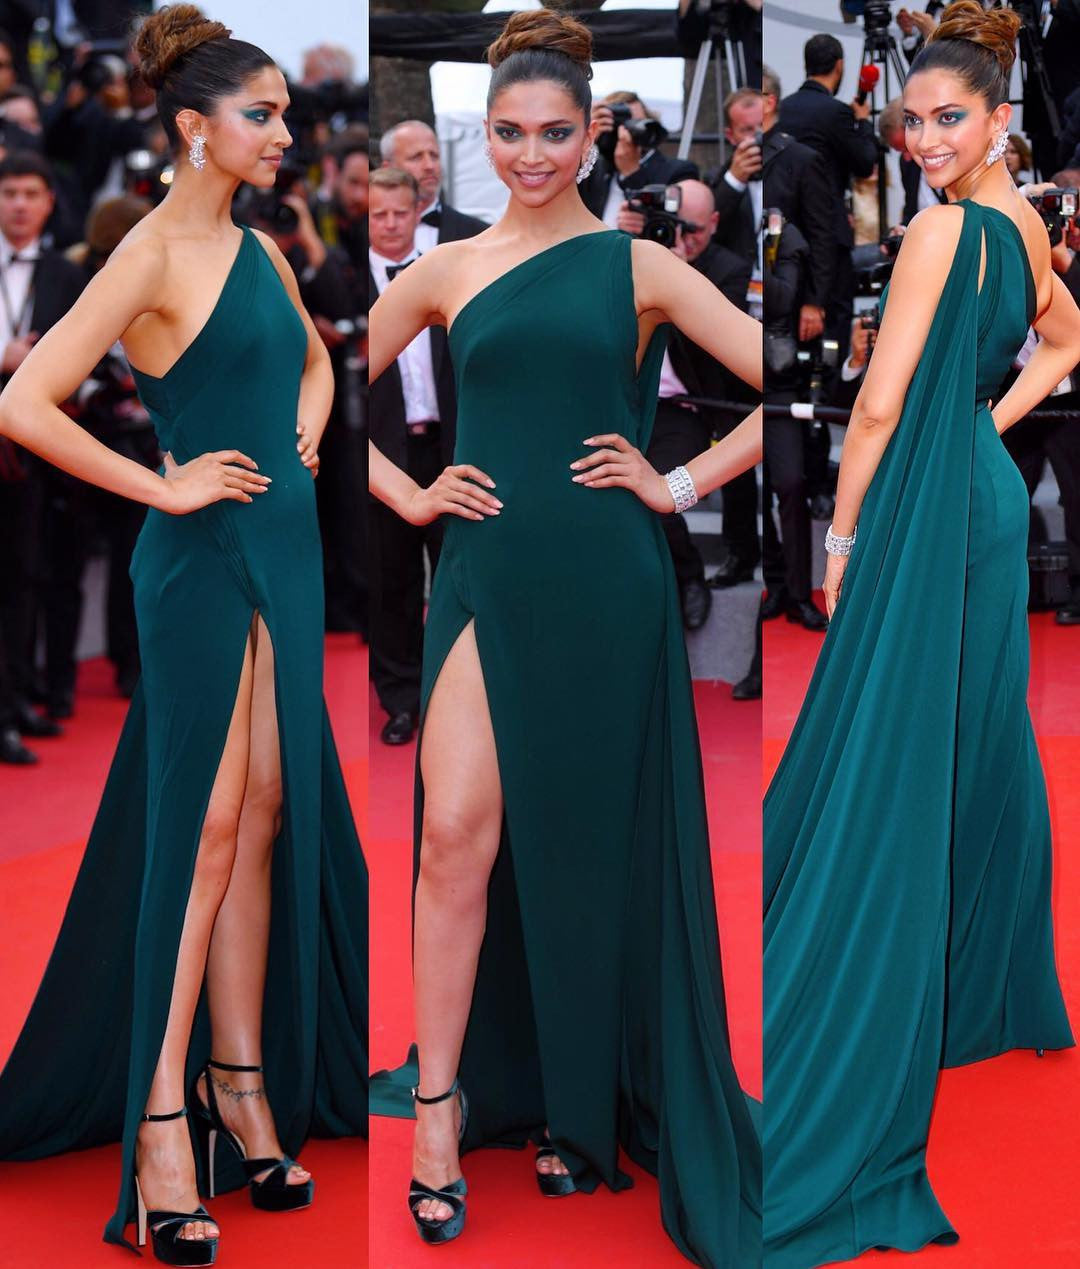 Deepika Padukone looked gorgeous in emerald green Brandon Maxwell one-shoulder gown